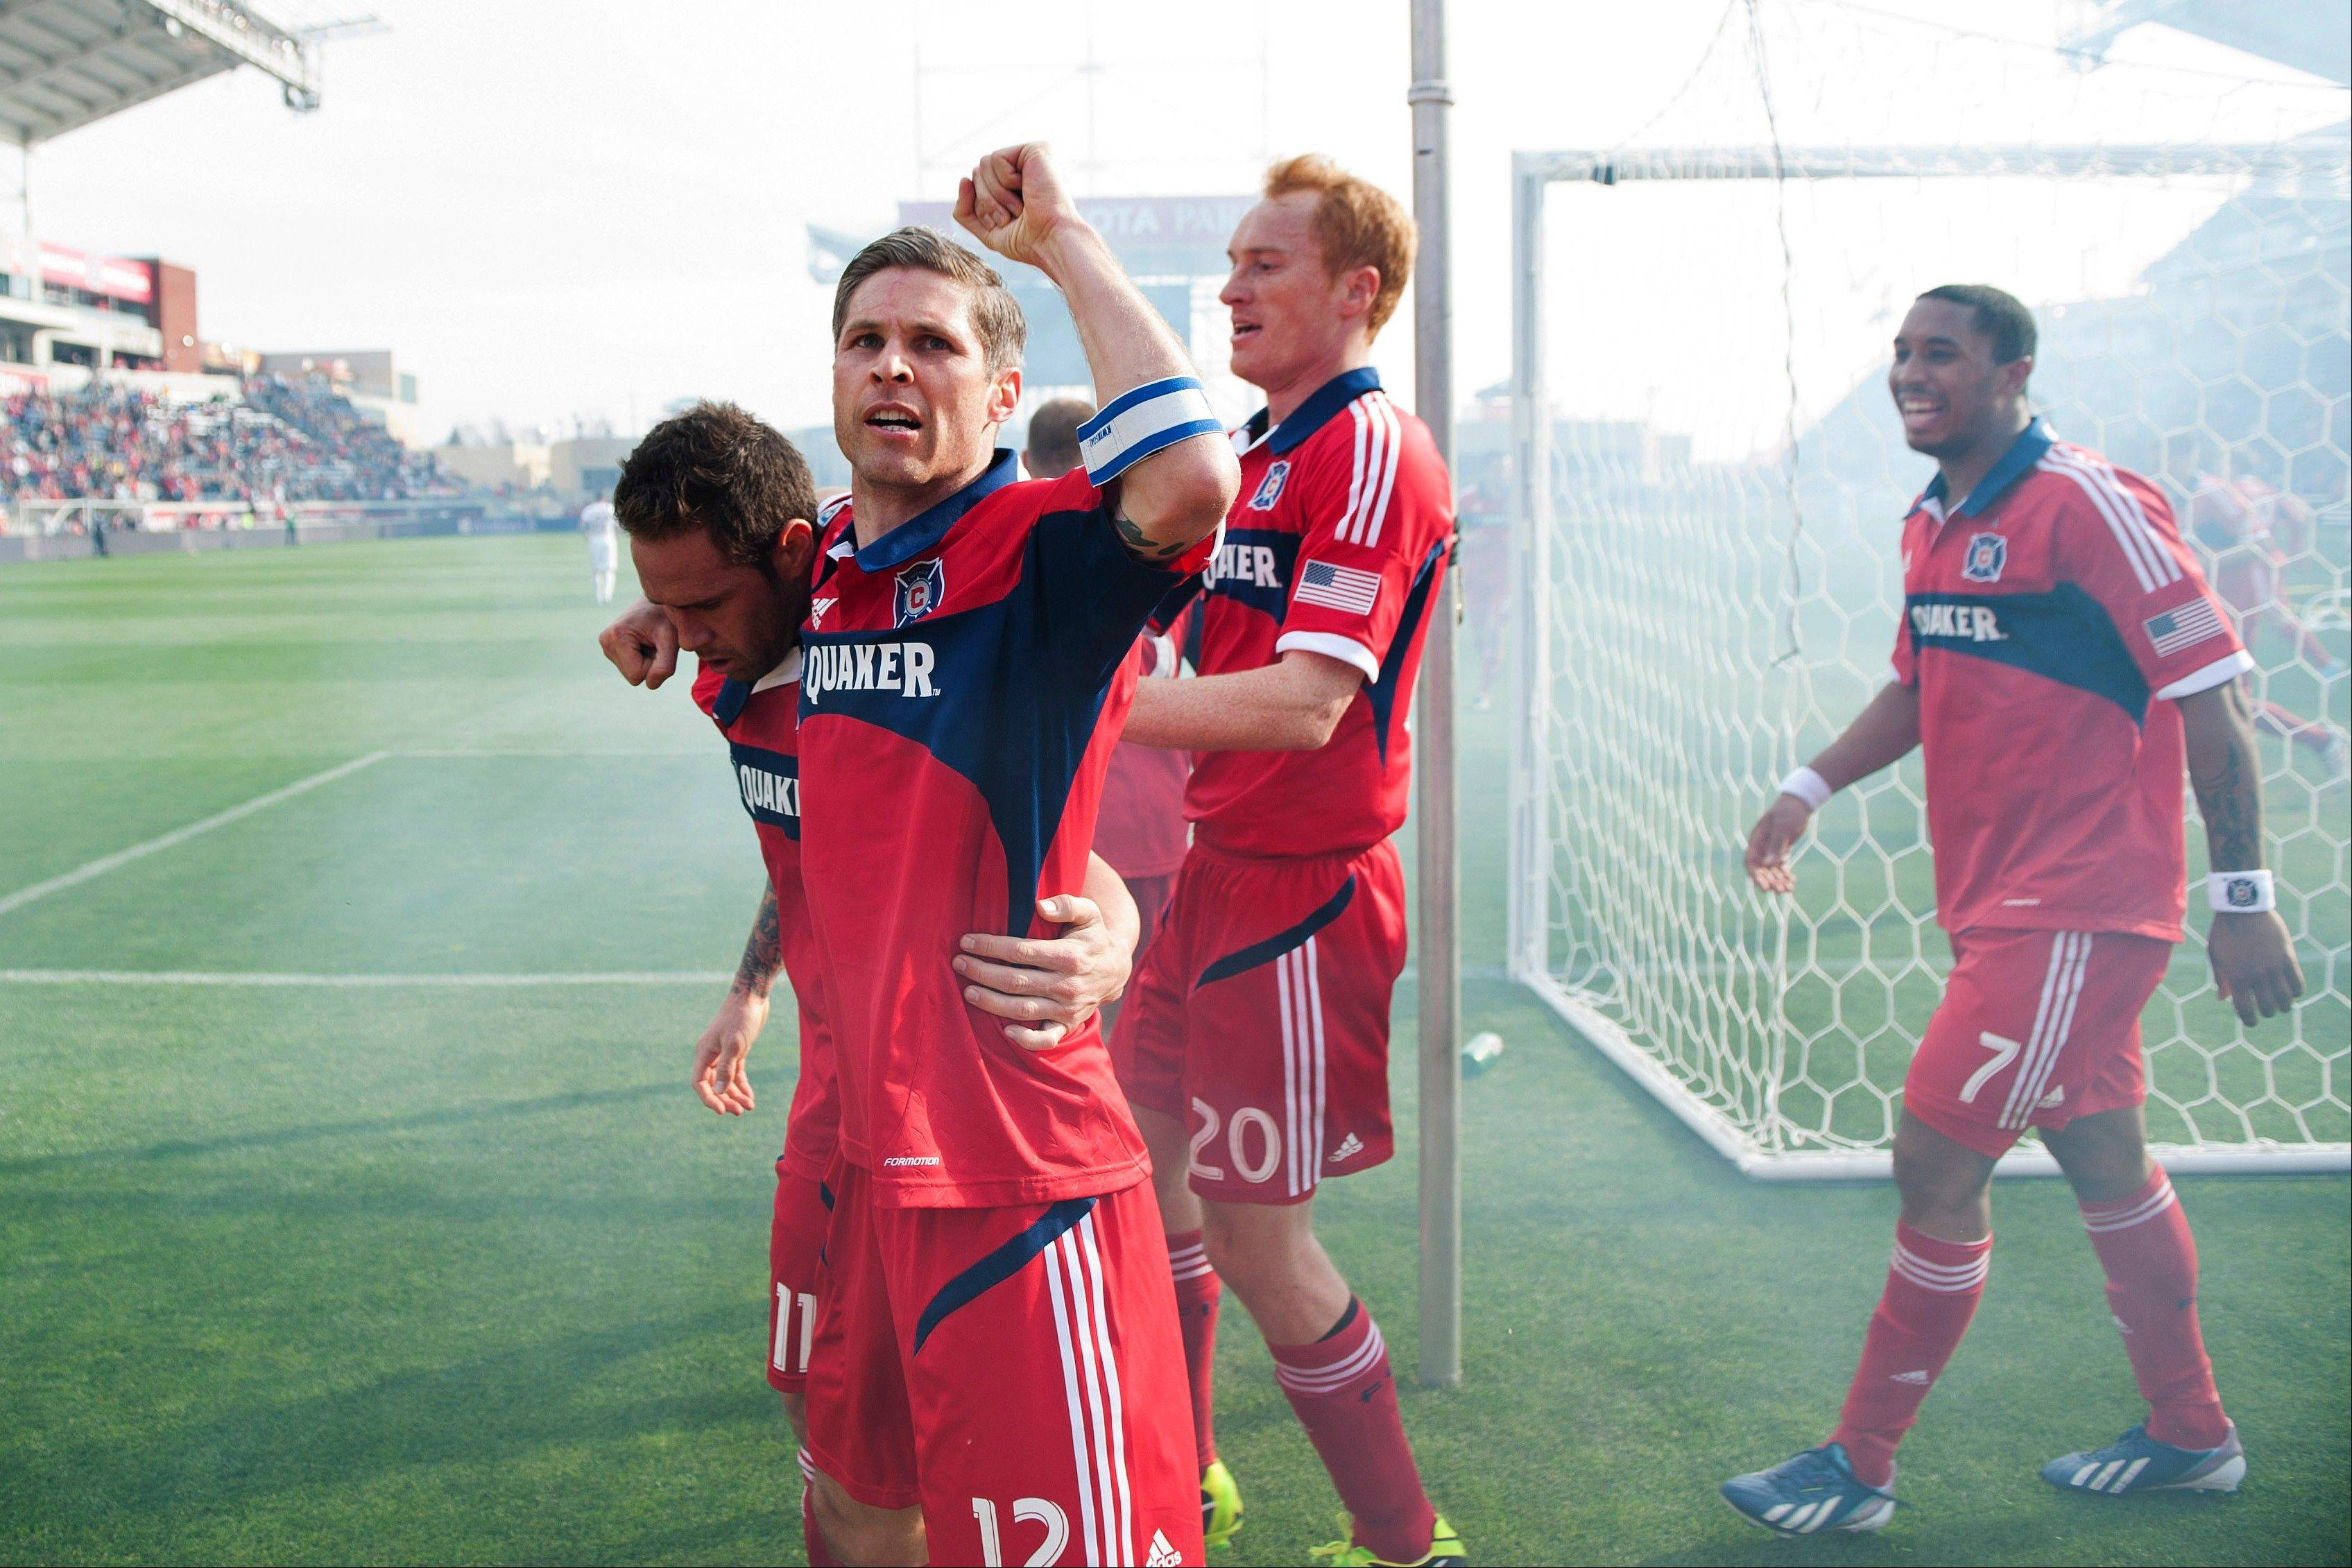 In this photo provided by the Chicago Fire, from left, Chicago Fire's Daniel Paladini, Logan Pause, Jeff Larentowicz and Sherjill MacDonald celebrate Paladini's goal against the New York Red Bulls during the first half of an MLS soccer match, Sunday, April 7, 2013, in Bridgeview, Ill. The Fire won 3-1.